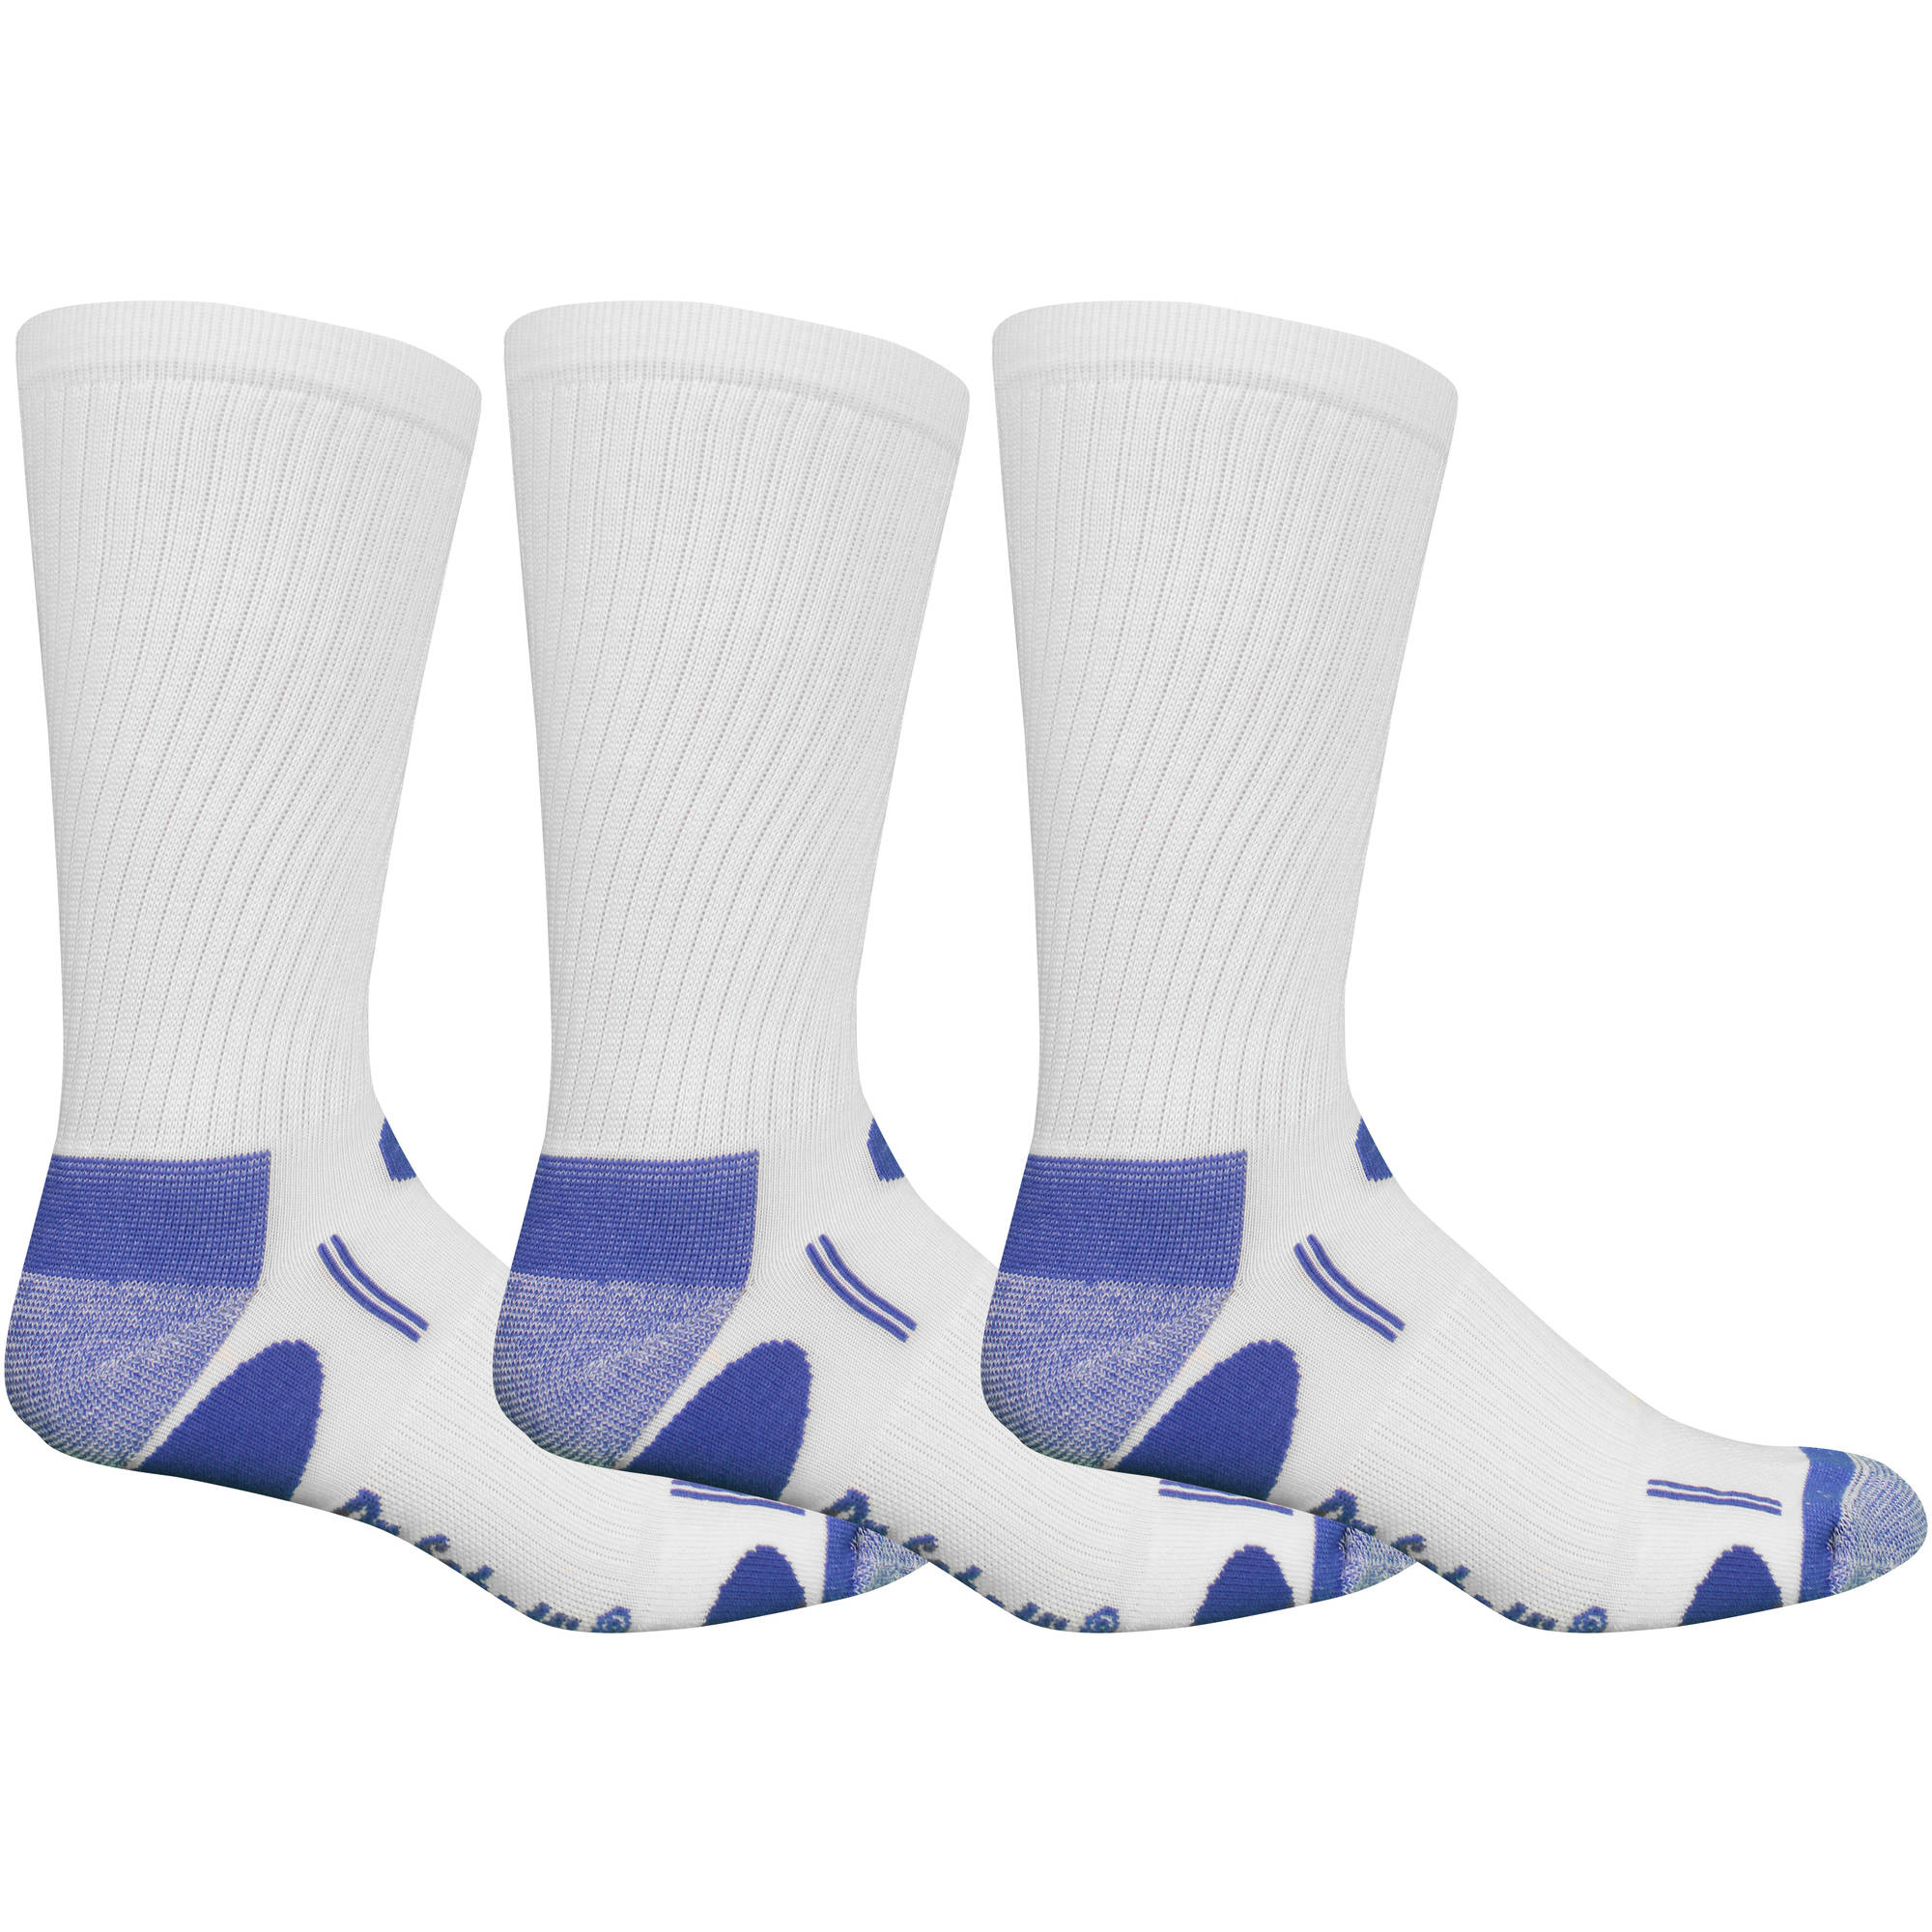 Dr. Scholl's Men's Tri-Zone Comfort Crew Socks - 3 Pack